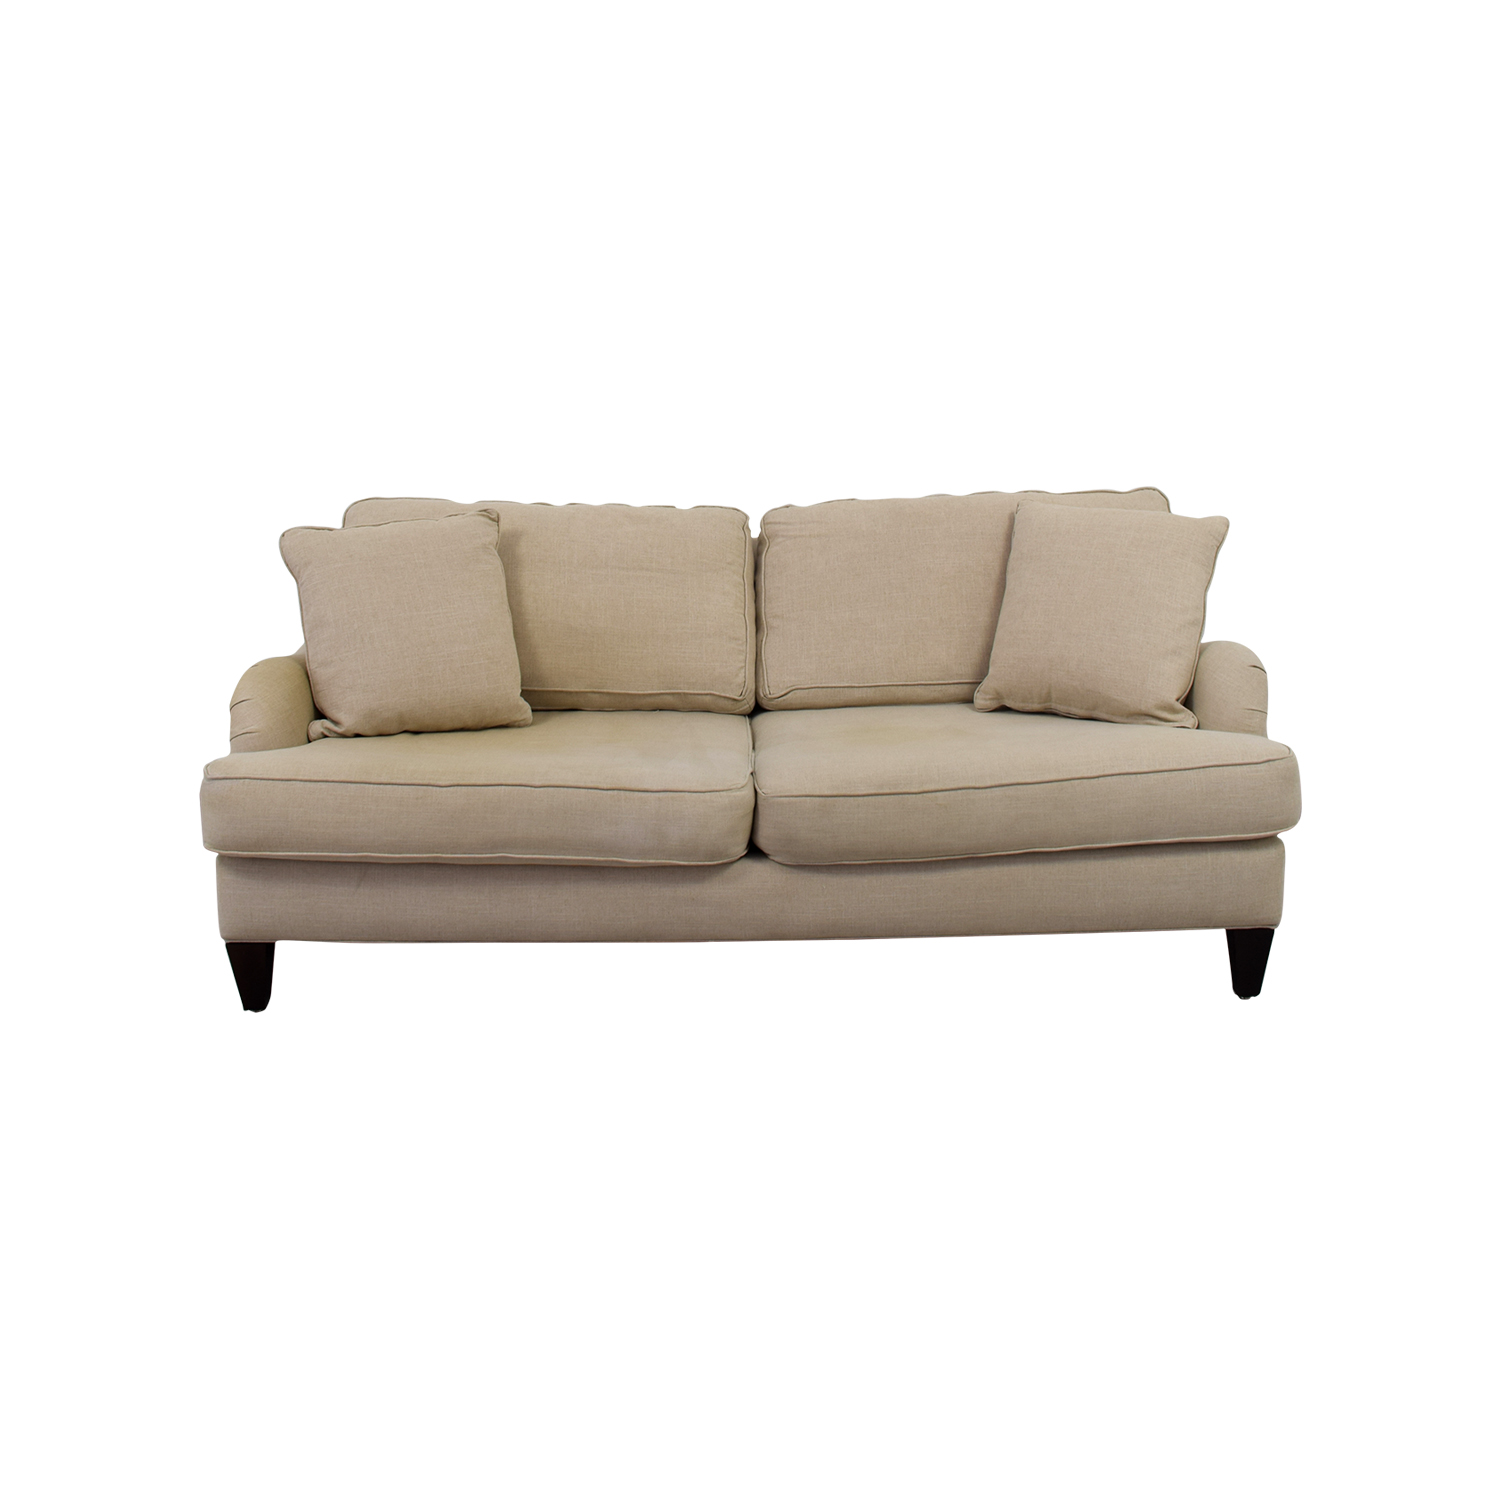 buy Home Decorators Khaki Two-Cushion Sofa Home Decorators Sofas